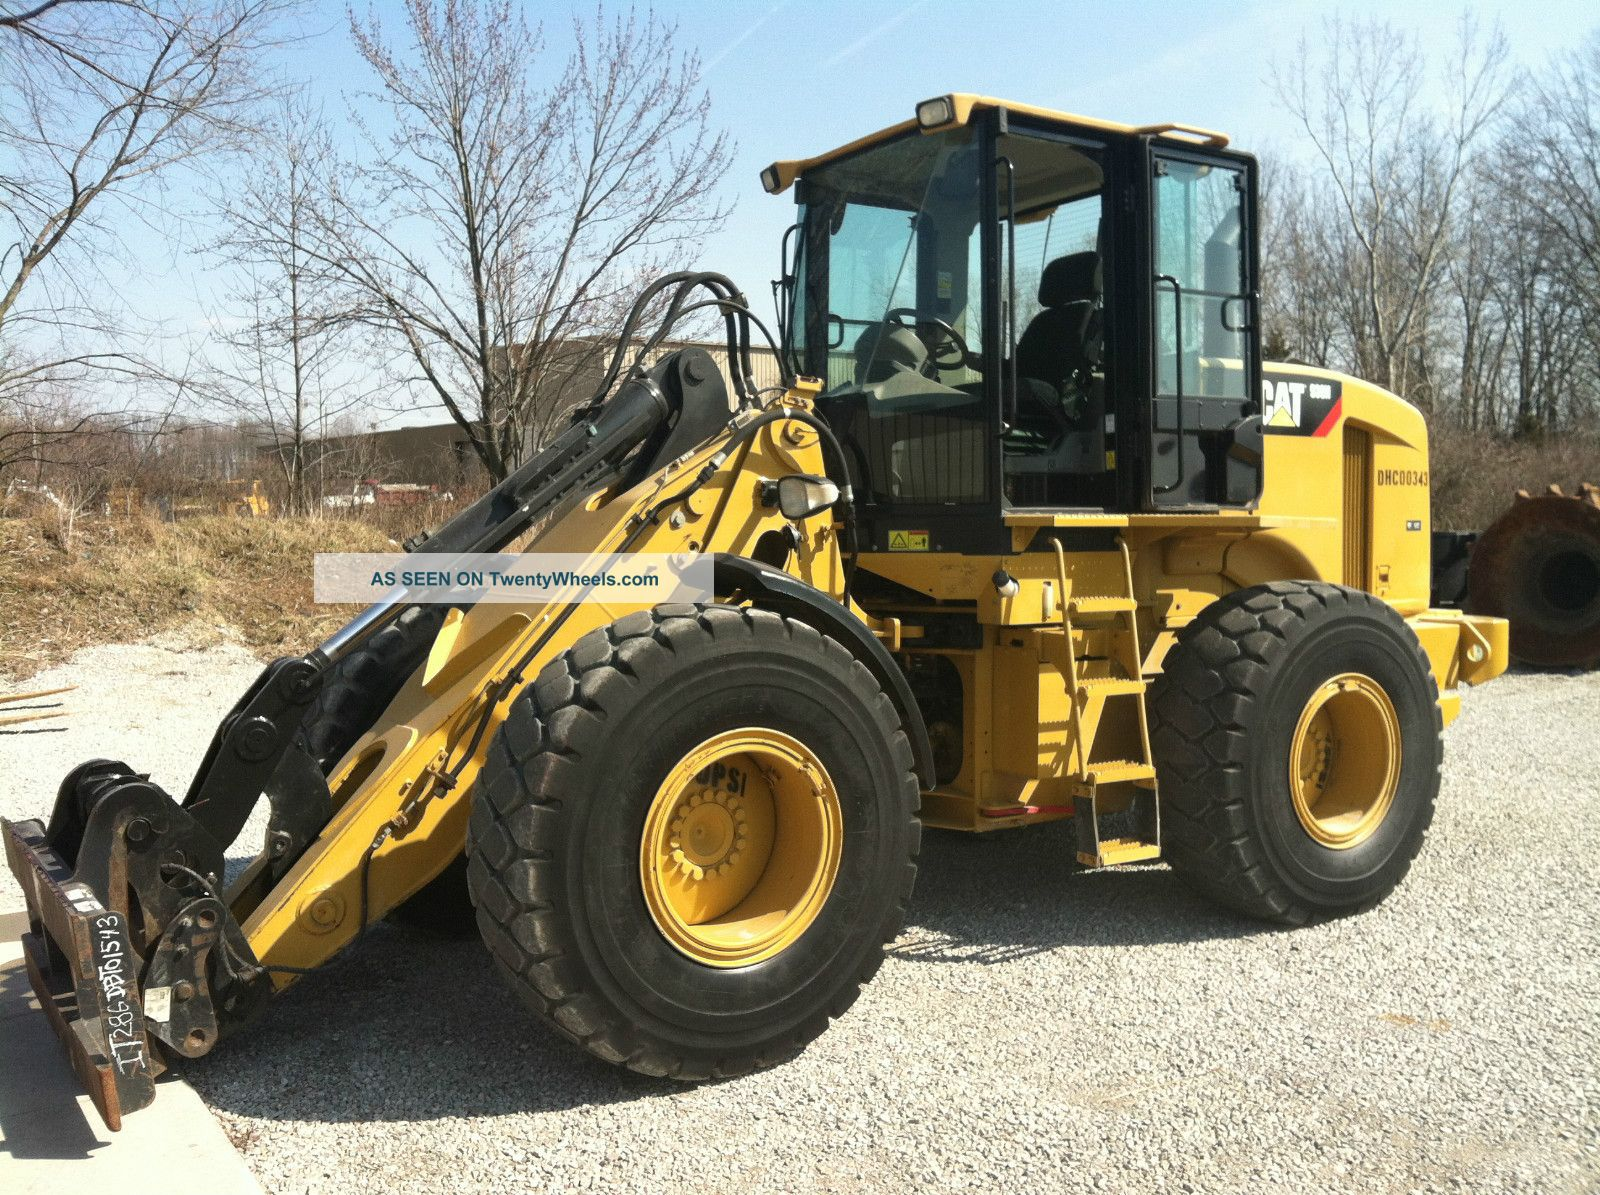 Caterpillar 930h photo - 1